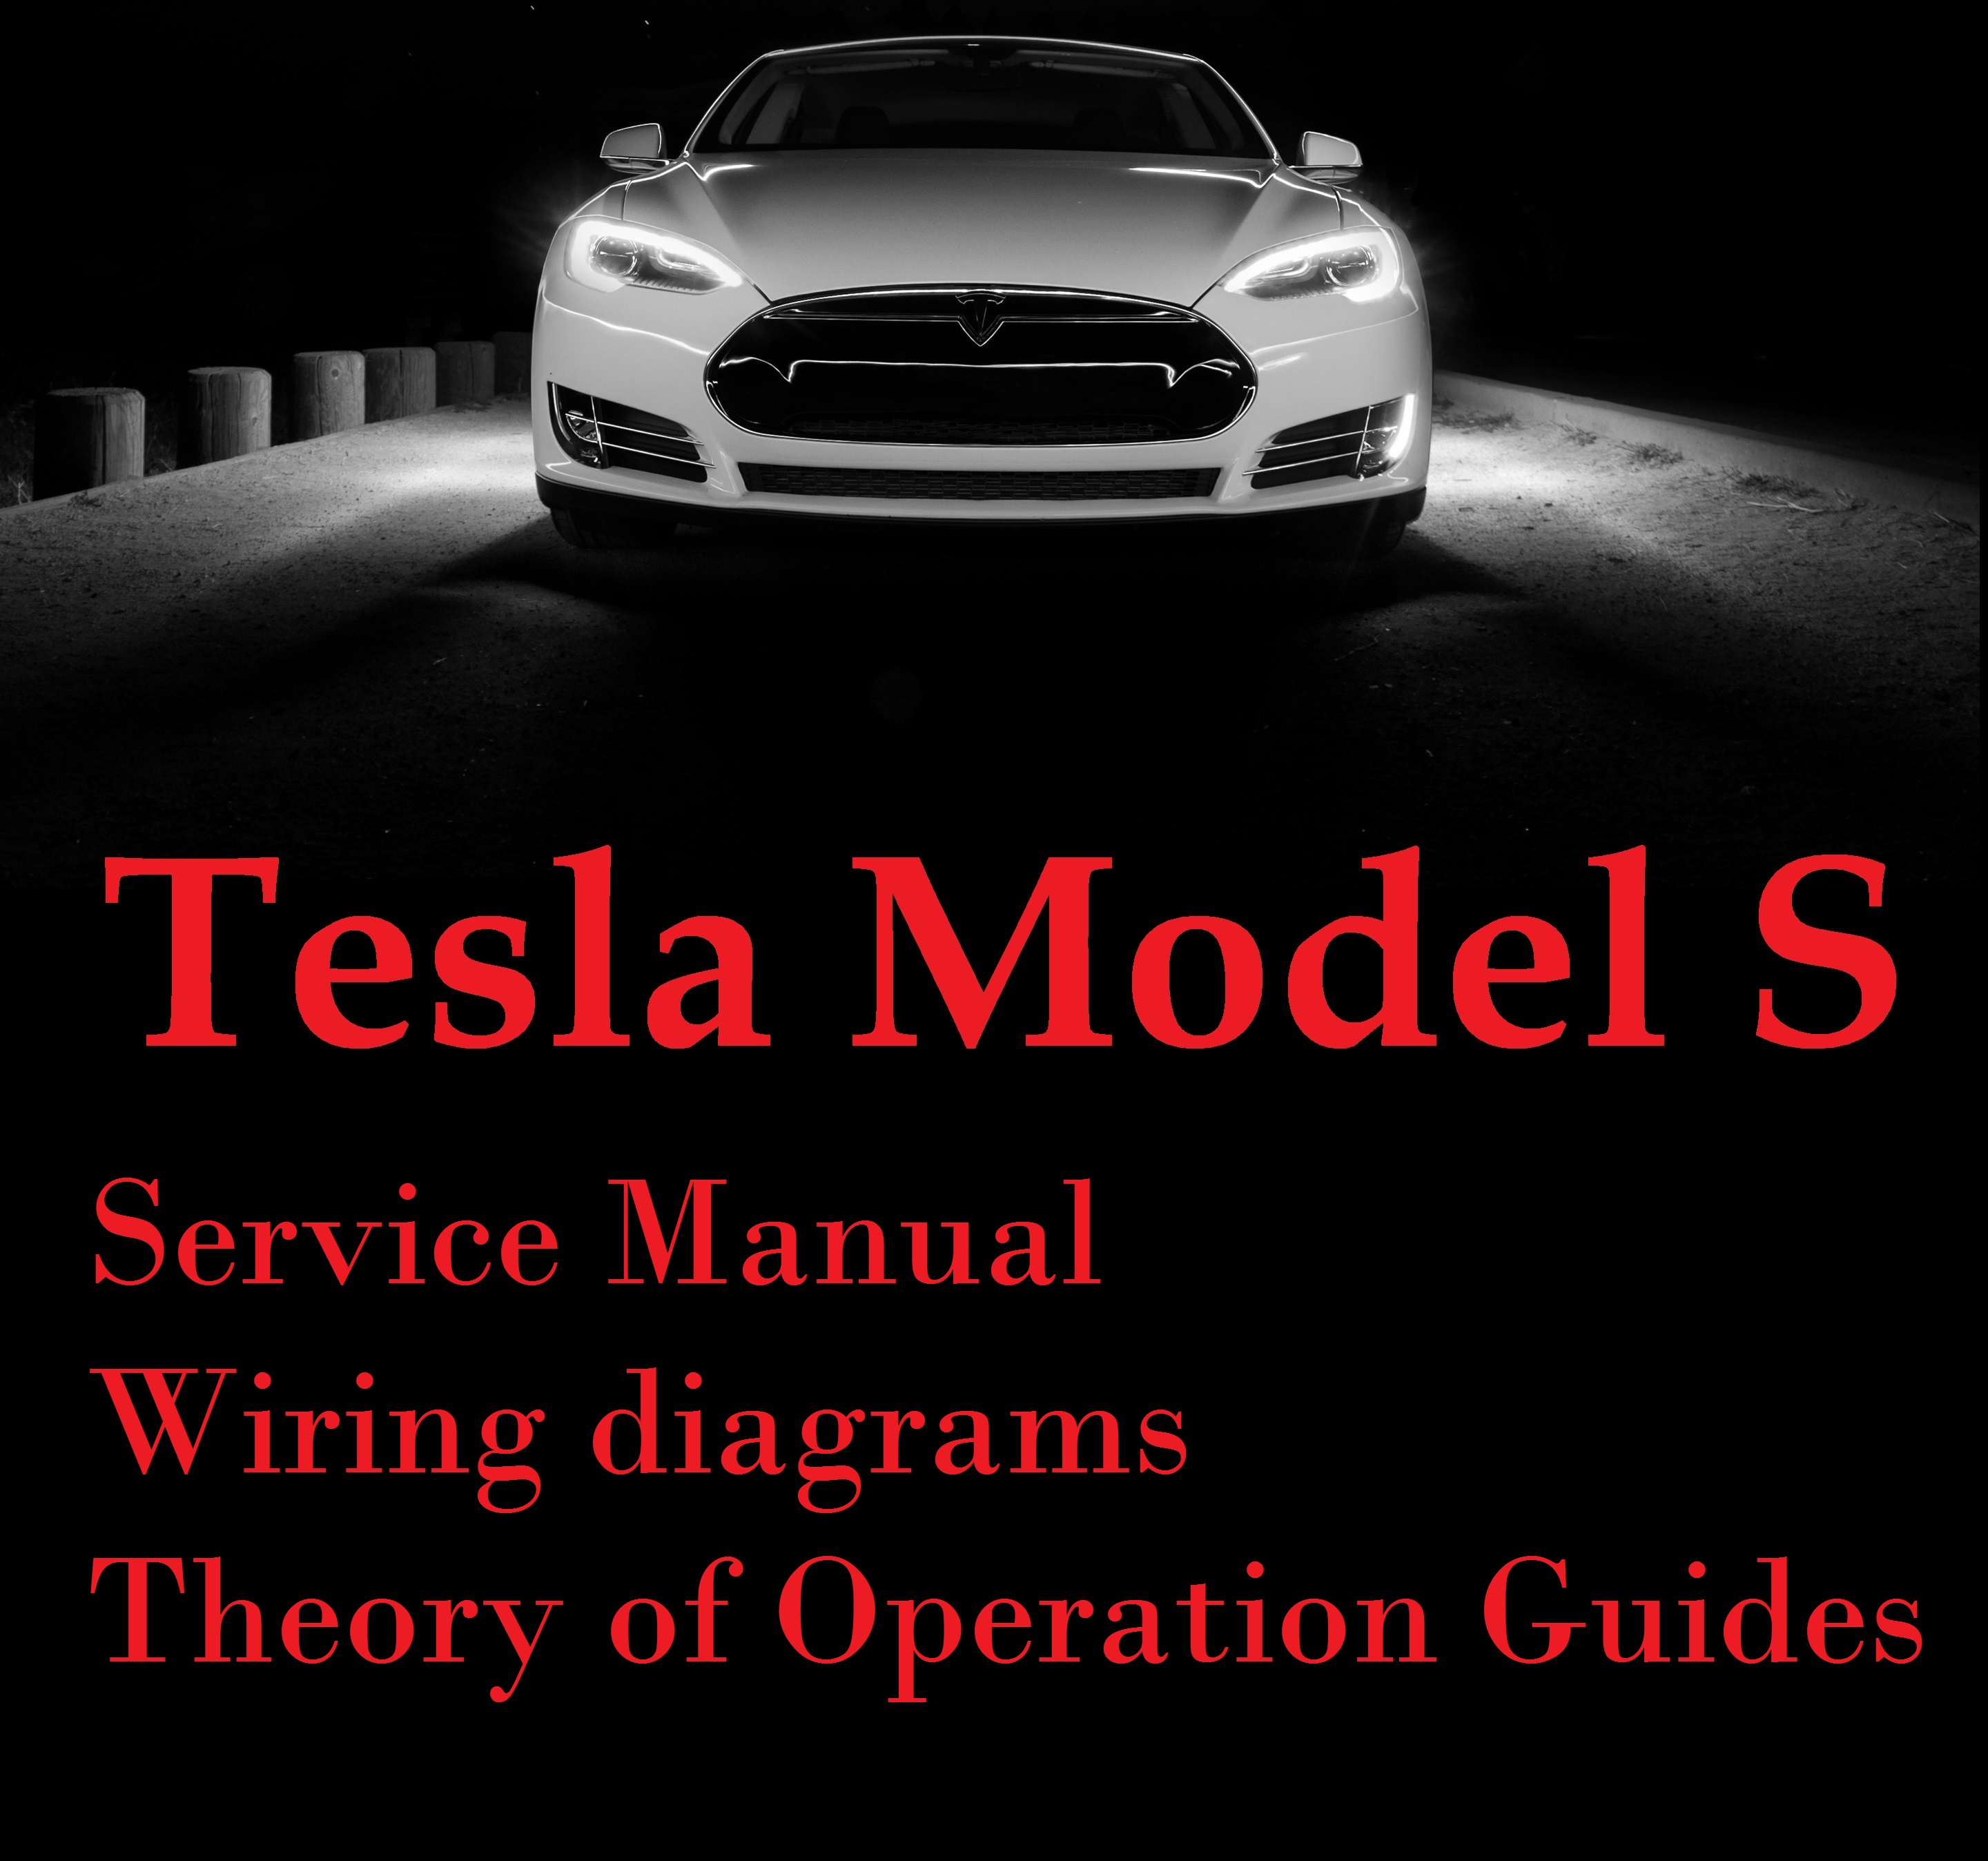 Tesla Model S Service Manual | Doents and Forms | Manuals on motor diagrams, hvac diagrams, troubleshooting diagrams, honda motorcycle repair diagrams, electrical diagrams, series and parallel circuits diagrams, engine diagrams, pinout diagrams, internet of things diagrams, switch diagrams, electronic circuit diagrams, snatch block diagrams, smart car diagrams, friendship bracelet diagrams, battery diagrams, transformer diagrams, lighting diagrams, sincgars radio configurations diagrams, led circuit diagrams, gmc fuse box diagrams,